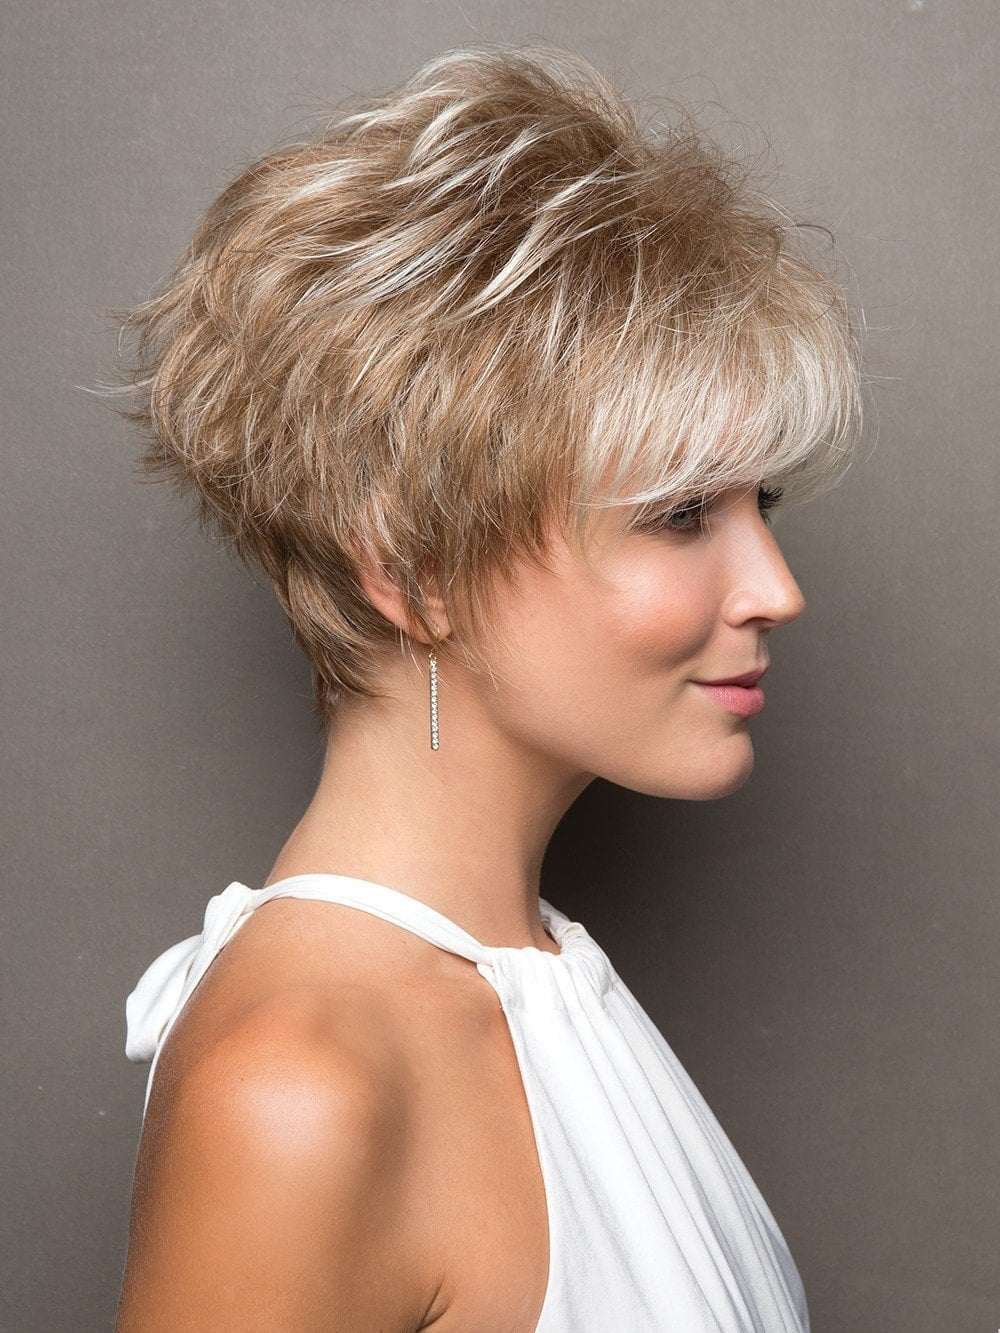 Bold multi-layered style is full of texture and hugs the nape with tapered edges.